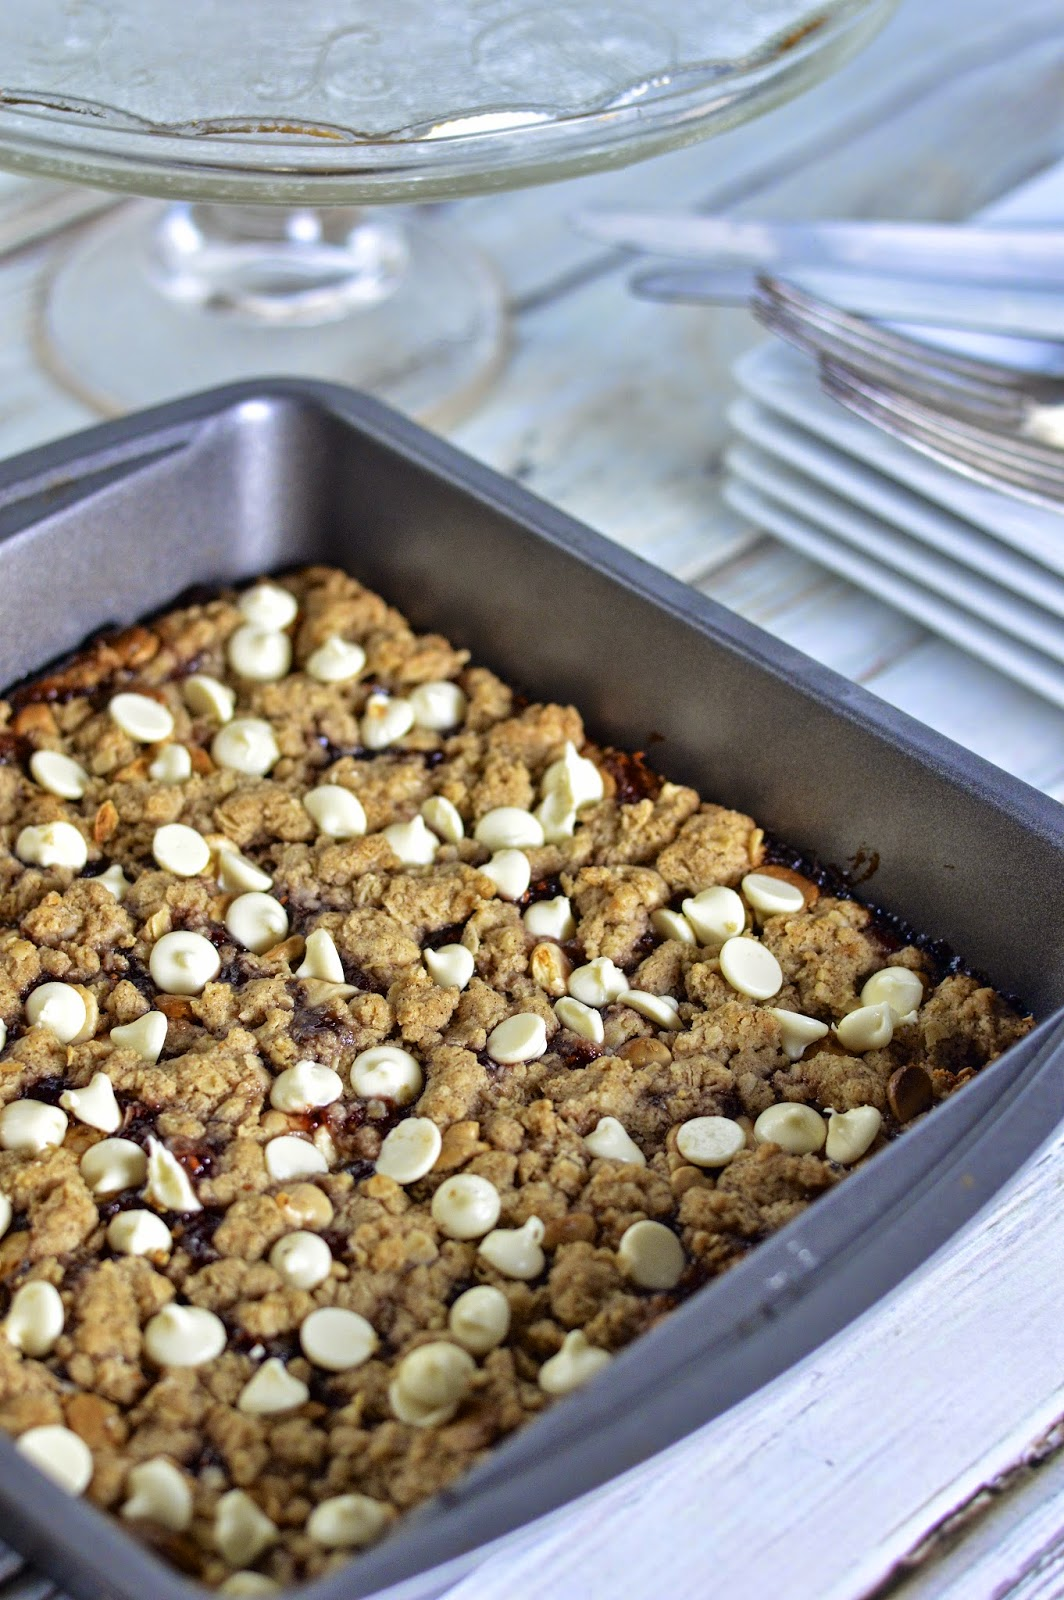 This decadent gluten free dessert is packed with spice, tart fruit and creamy white chocolate chips for the perfect holiday bar.